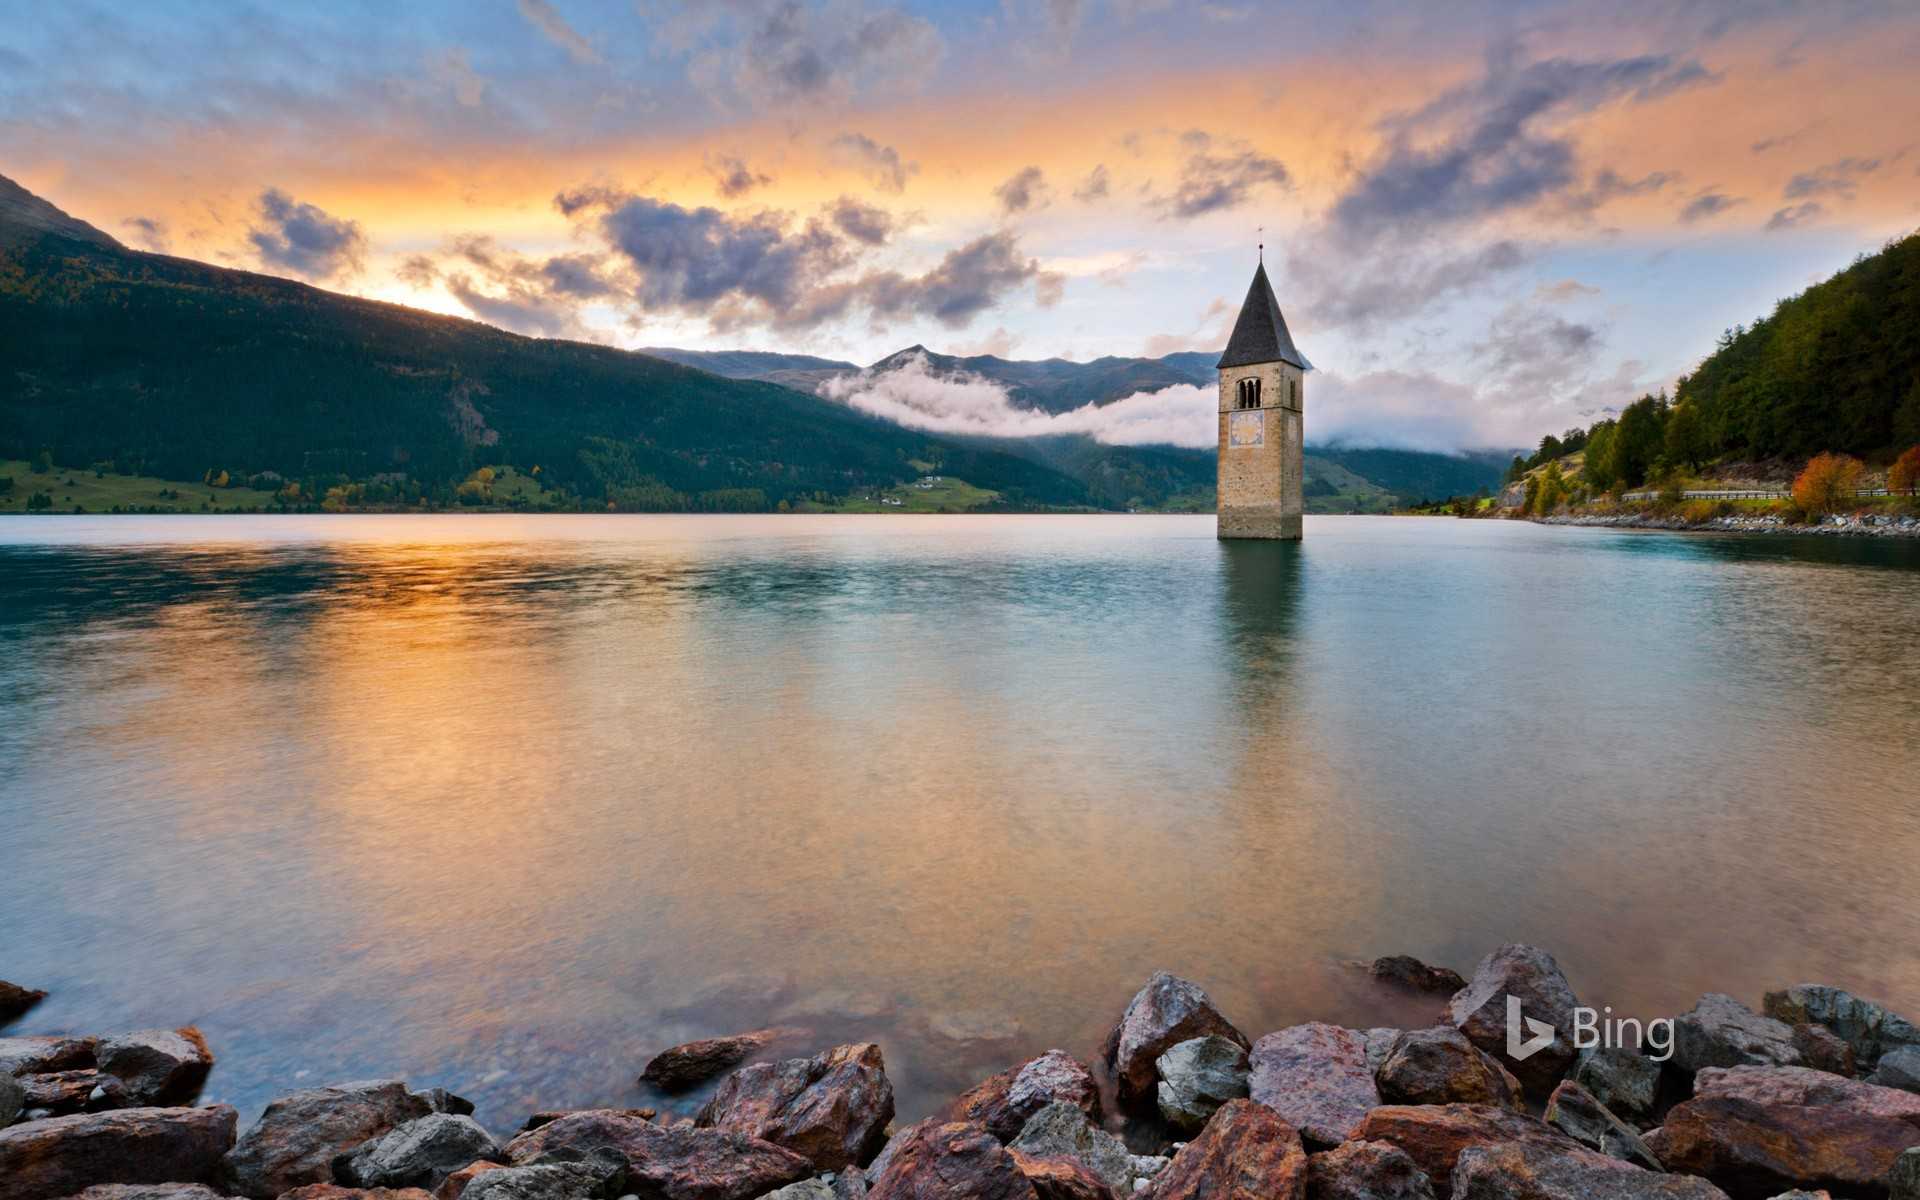 The bell tower in Lake Reschen in South Tyrol, Italy